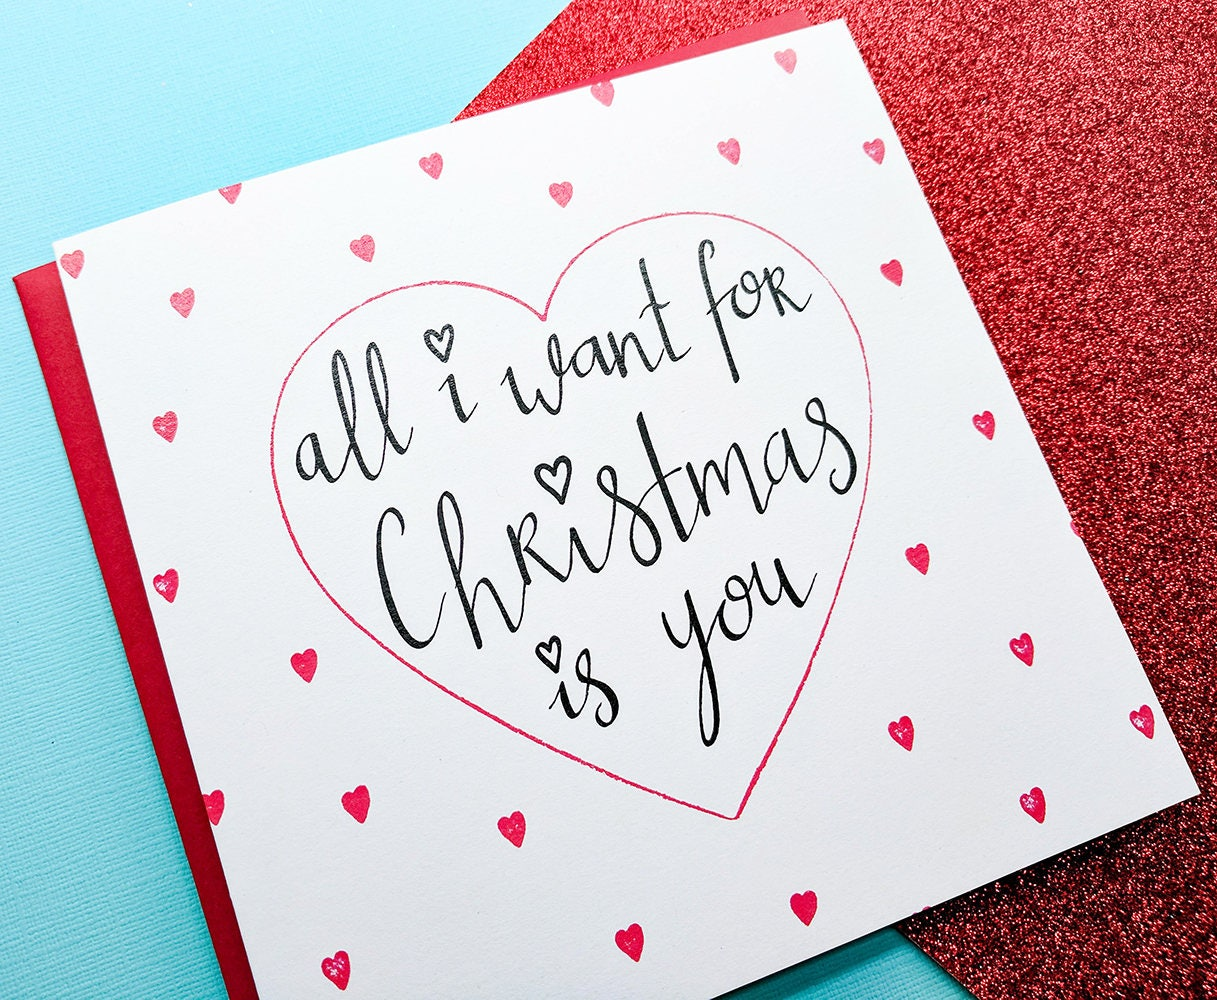 All i want for christmas card romantic girlfriend christmas all i want for christmas card romantic girlfriend christmas cardboyfriend christmas card kristyandbryce Choice Image